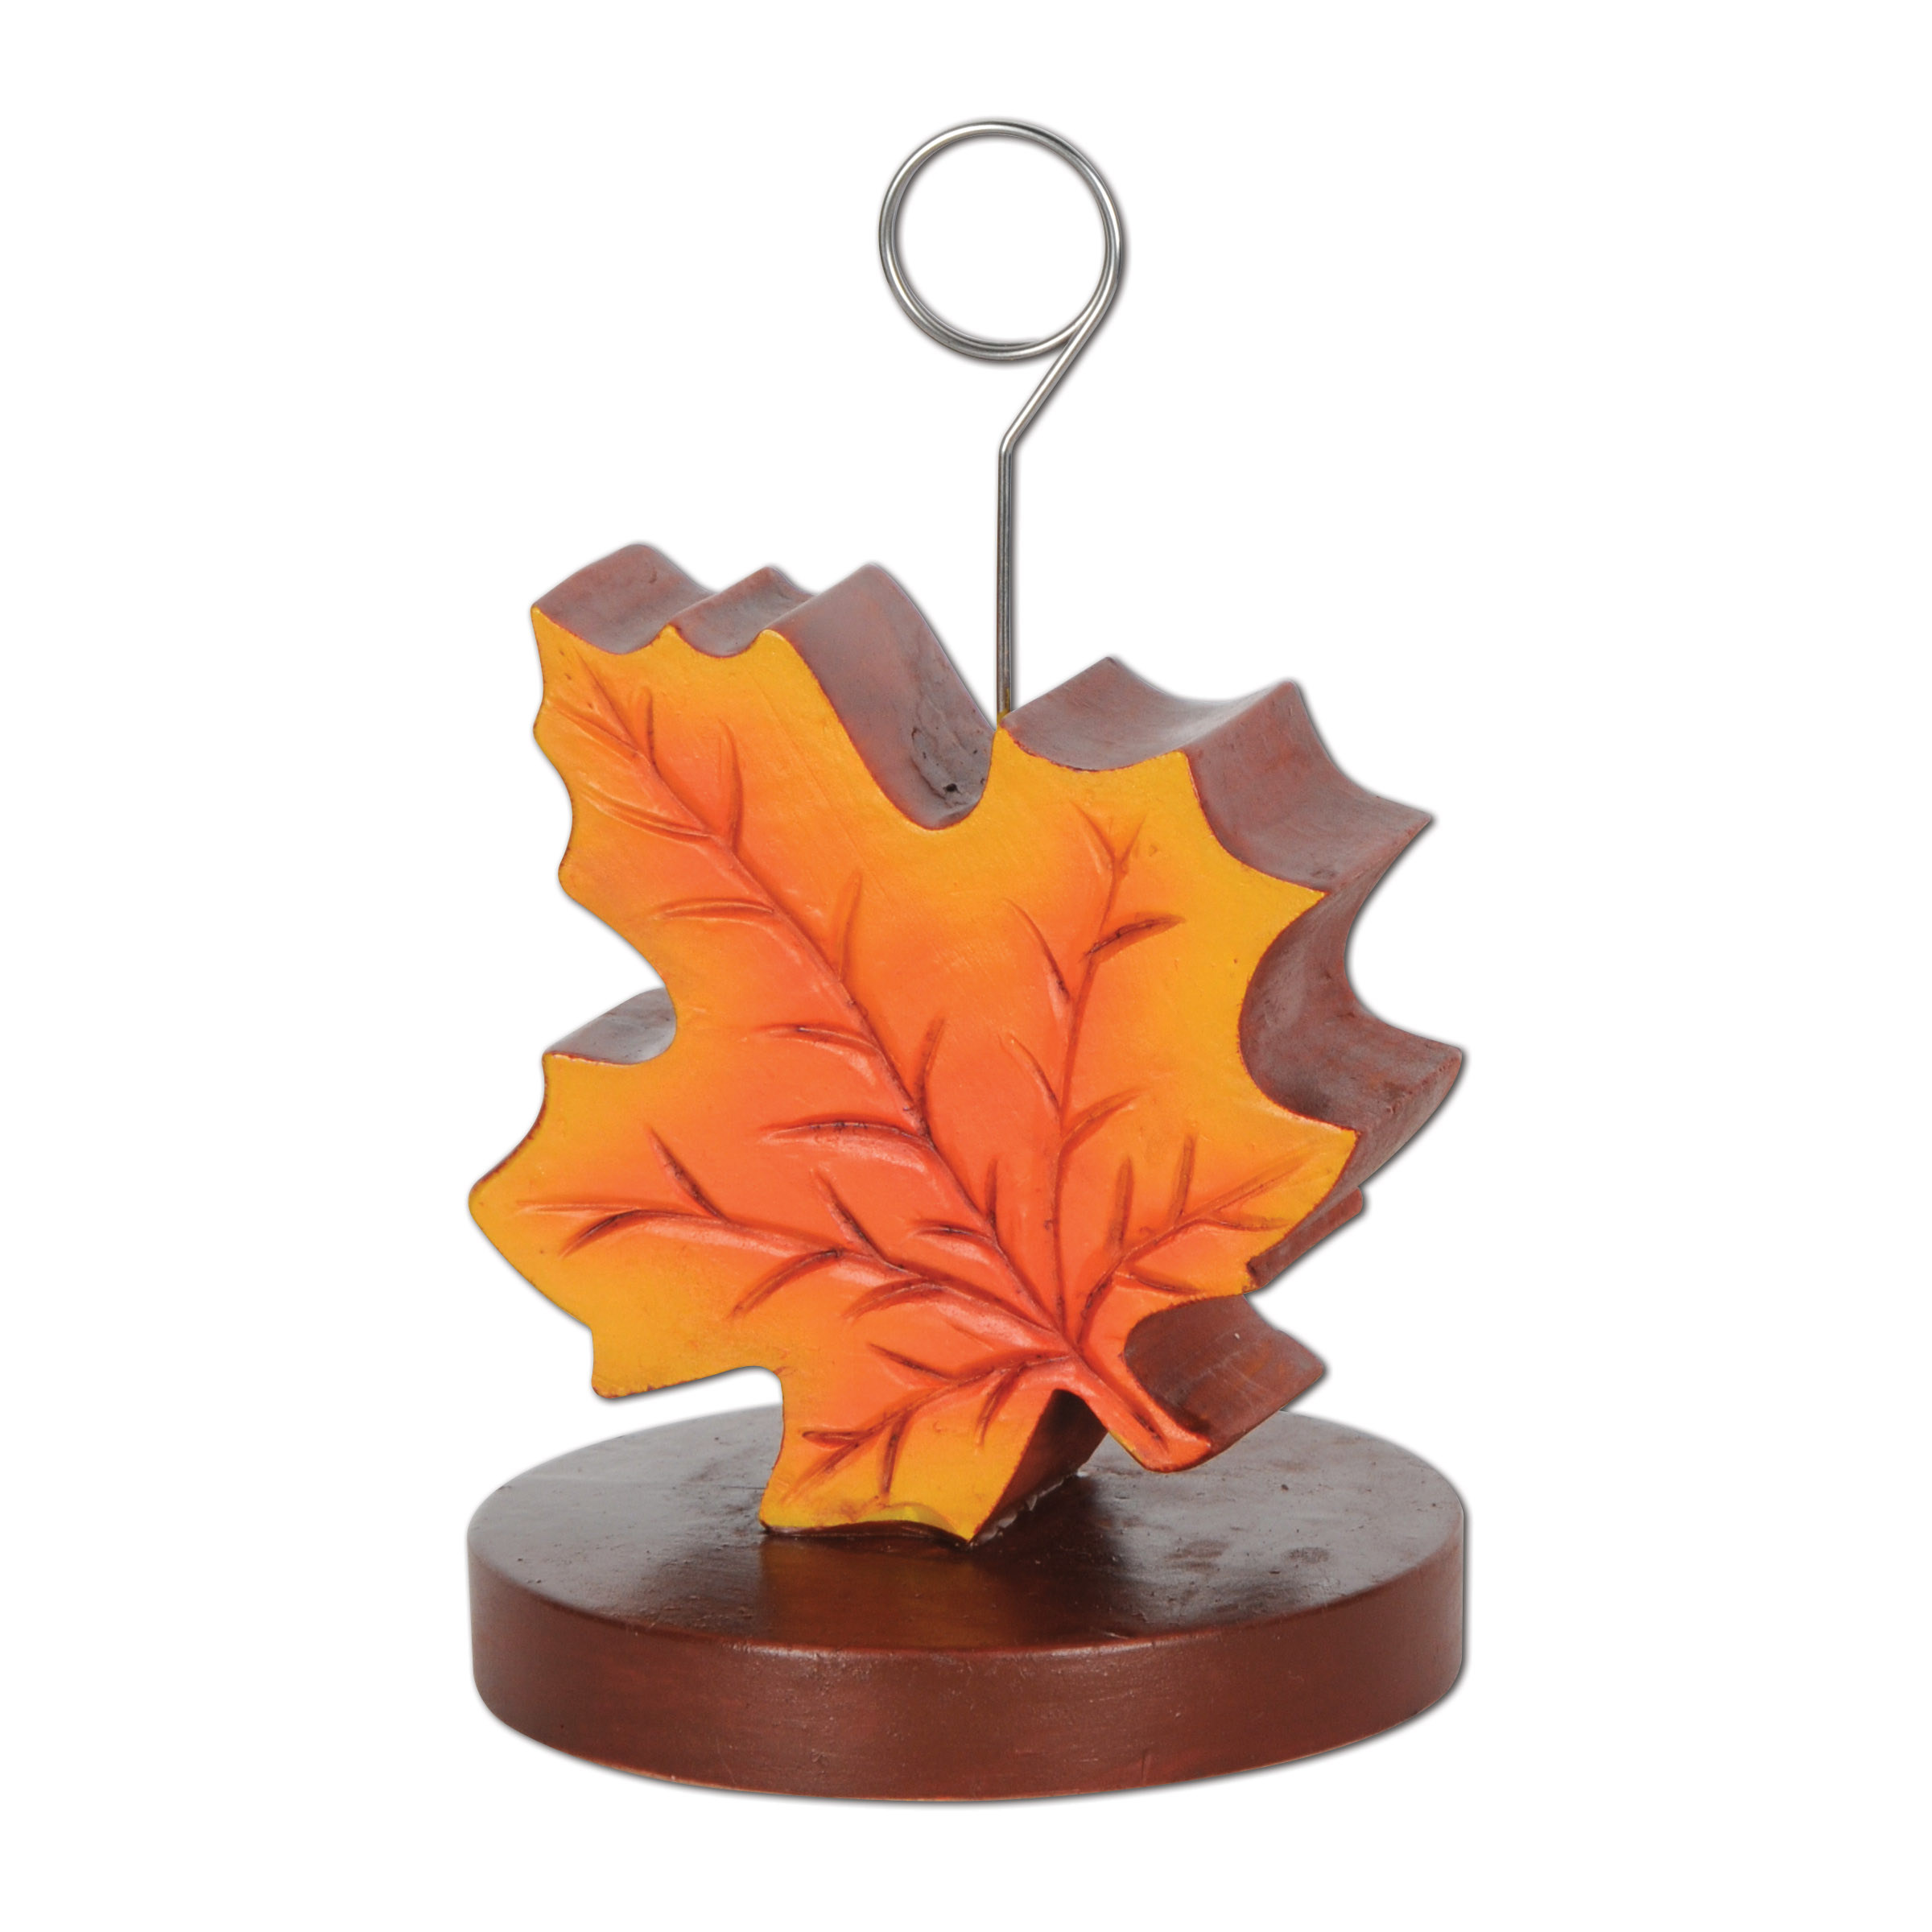 Fall Leaf Photo/Balloon Holder 6 Oz (Pack of 6) Fall Decorations, Autumn decor, Wholesale party supplies, Thanksgiving centerpieces, Inexpensive fall party supplies